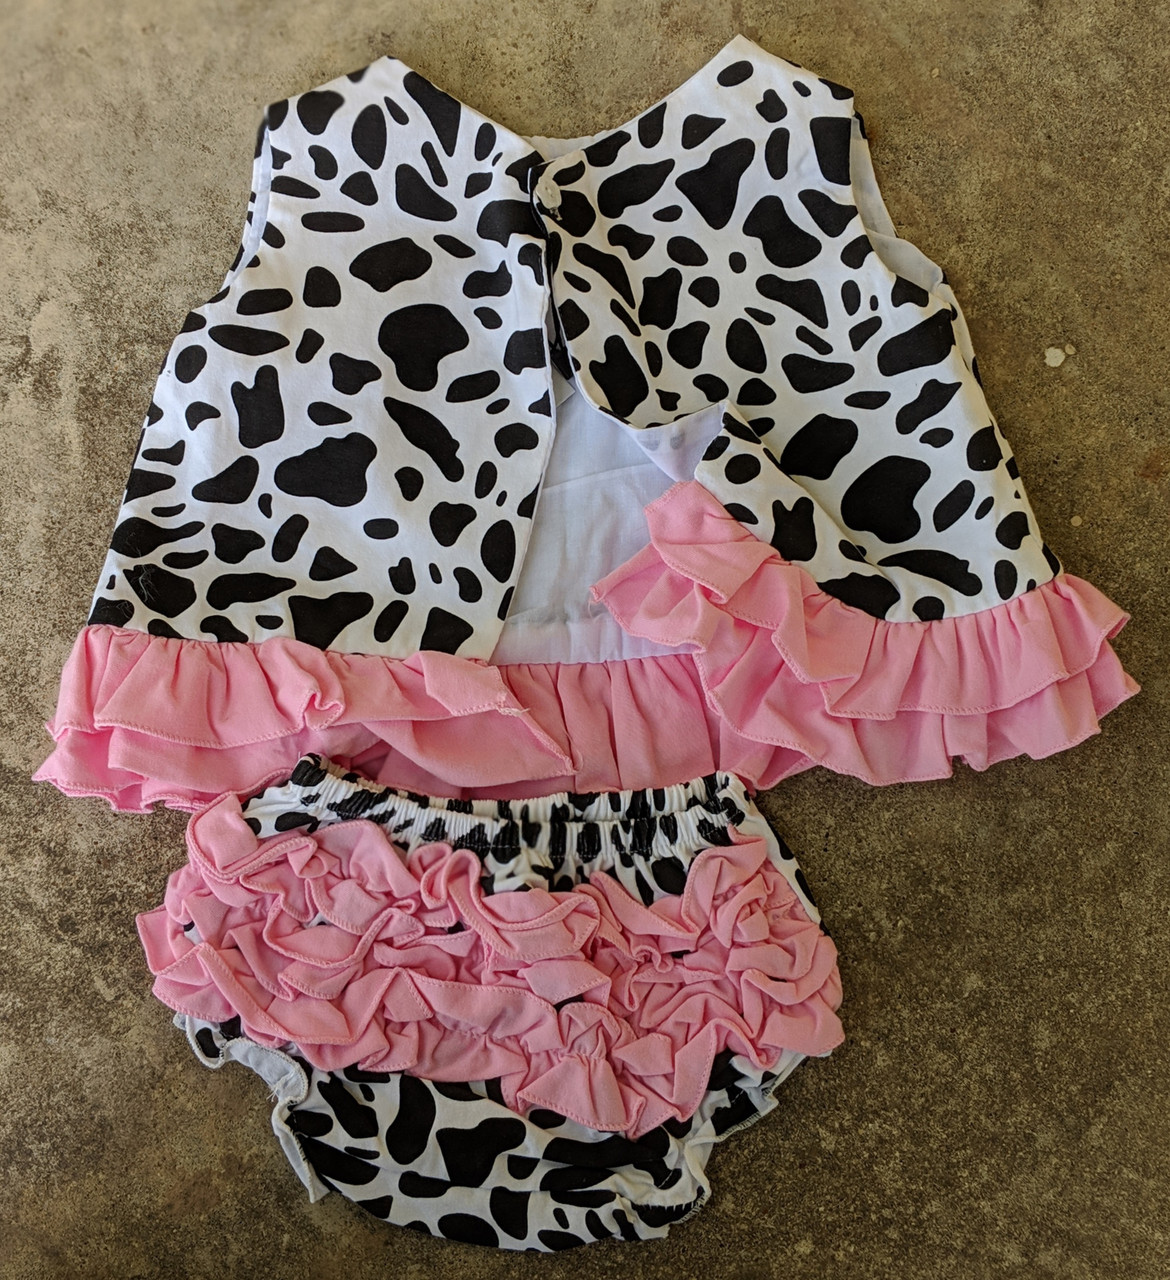 Hairbows Unlimited- Cowgirl Outfit (12-18m)